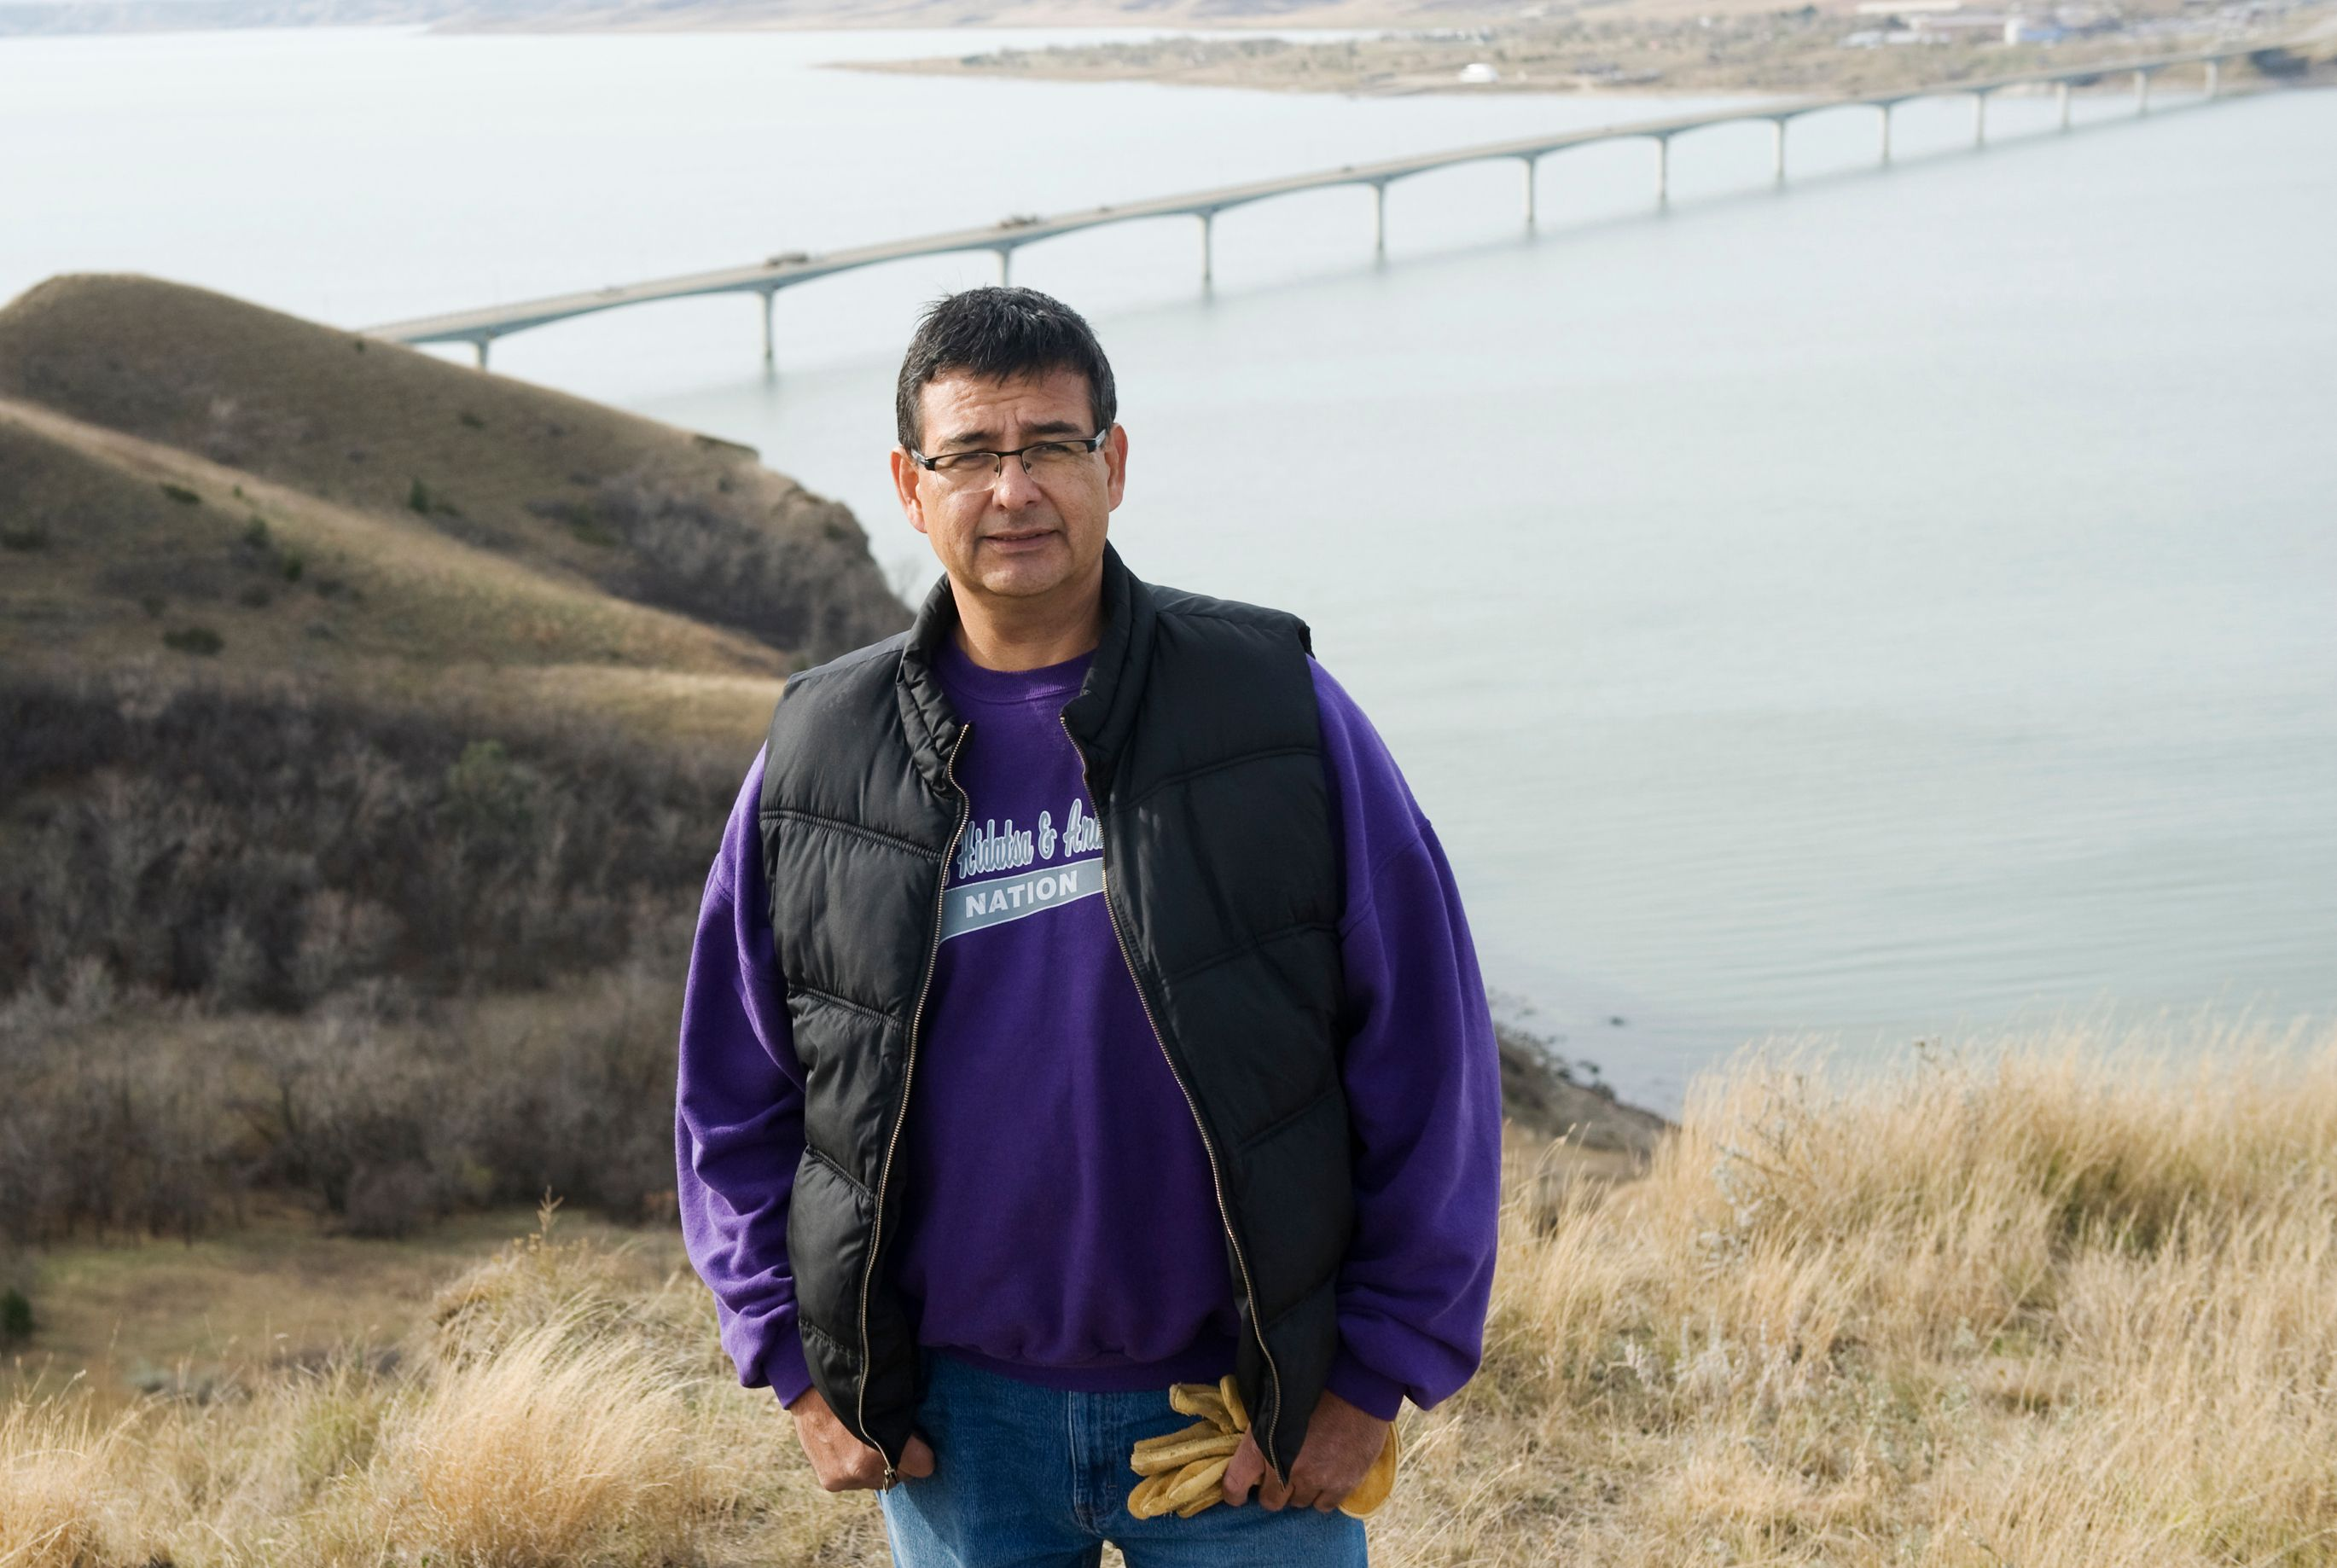 Mark Fox, who was running for tribal chairman at the time, poses at Crow Flies High Butte above the Missouri River in North D